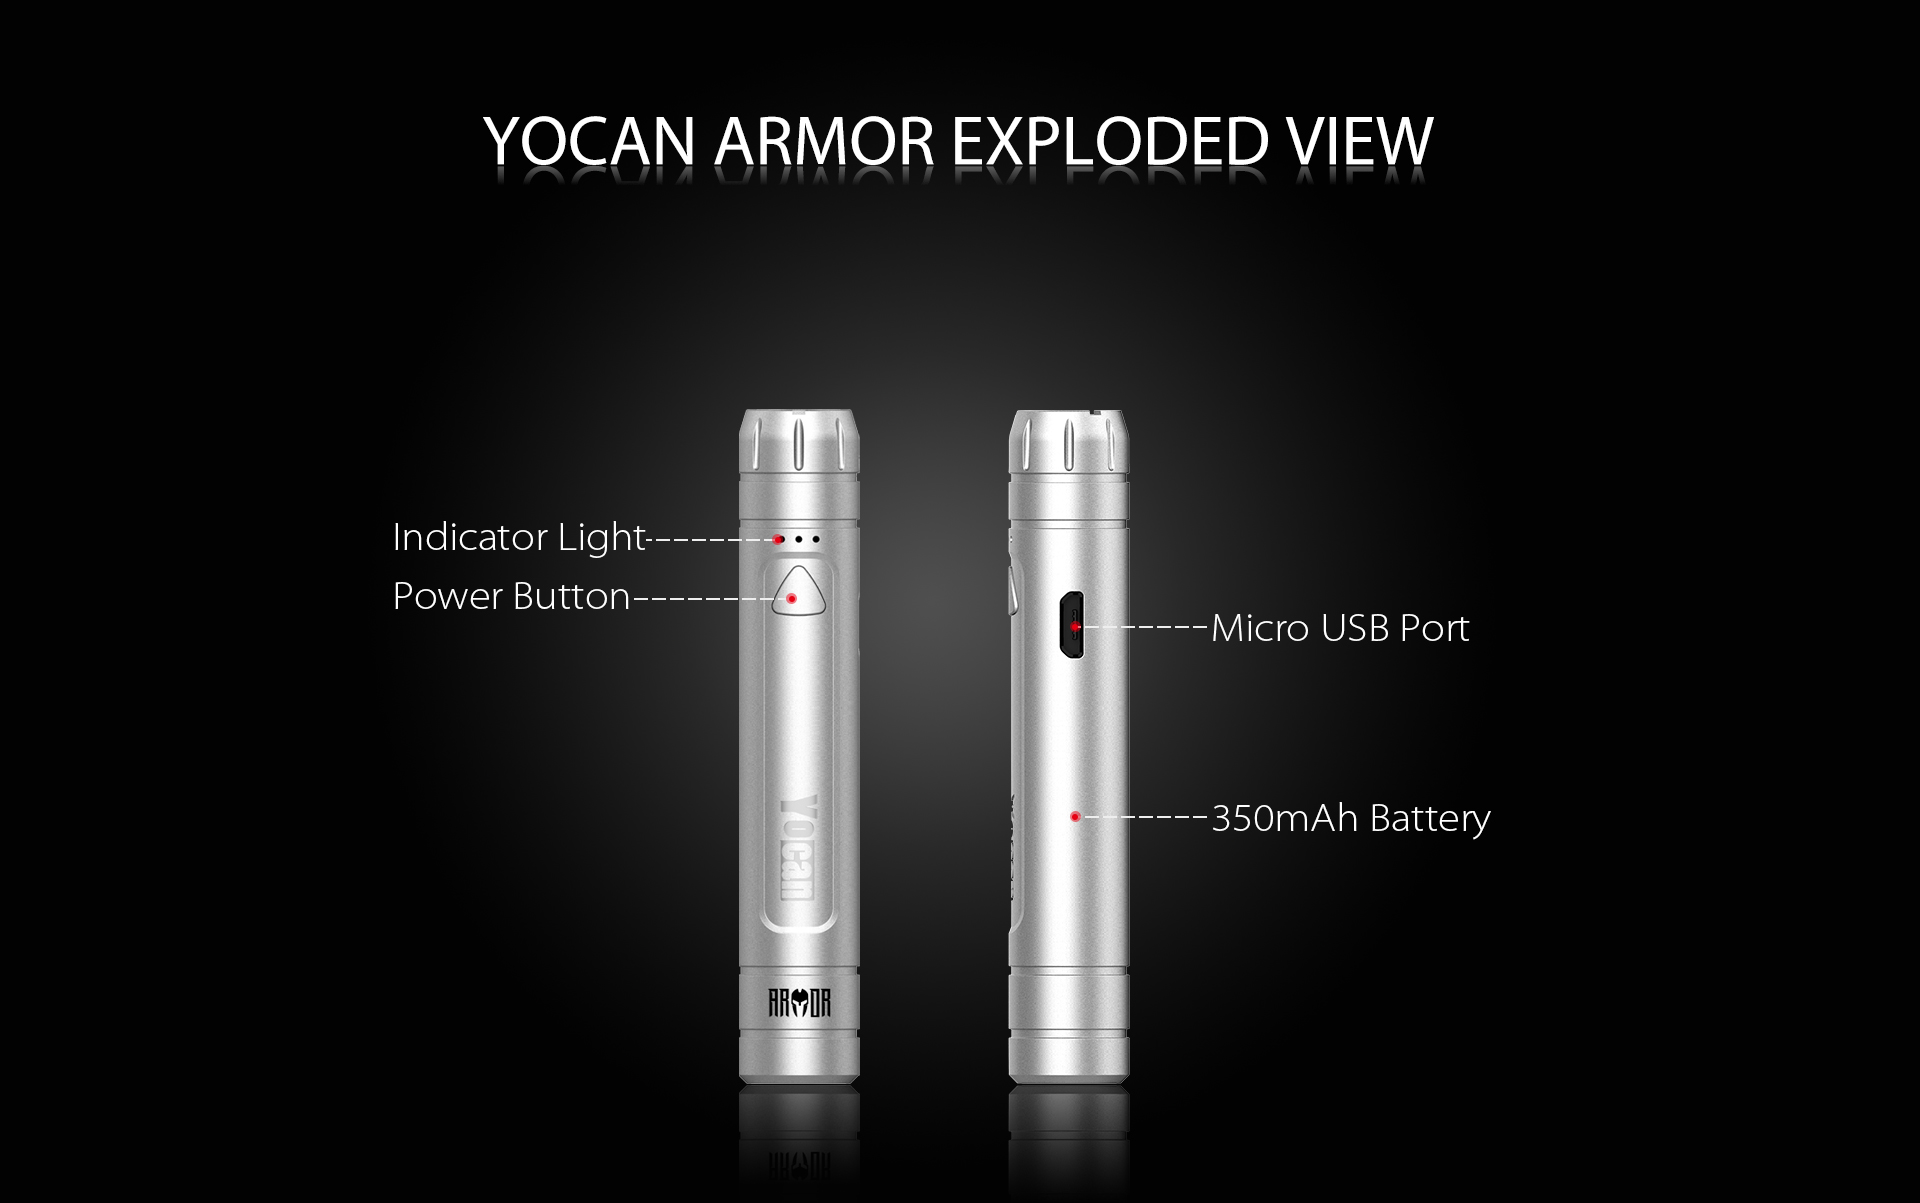 Yocan Armor 510 Thread Battery exploded view.